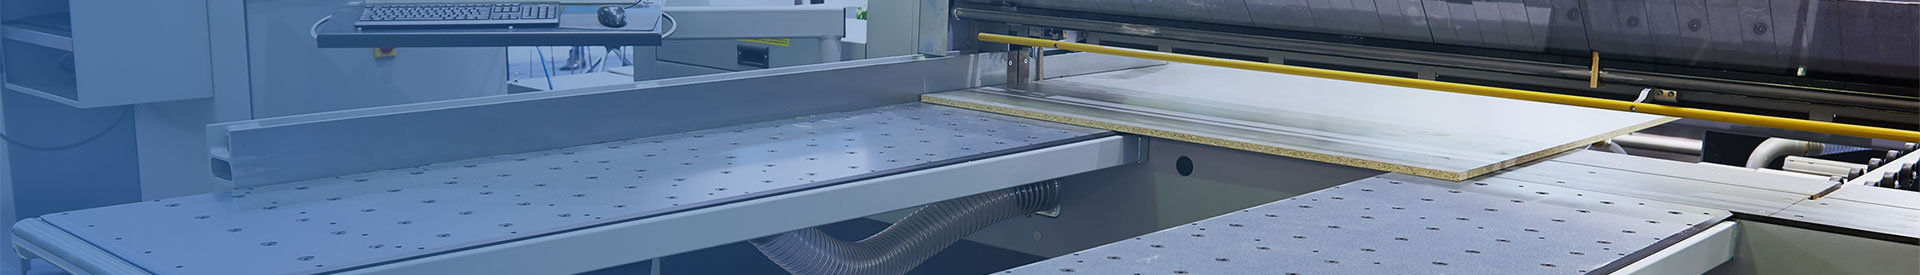 Cutting-services-header